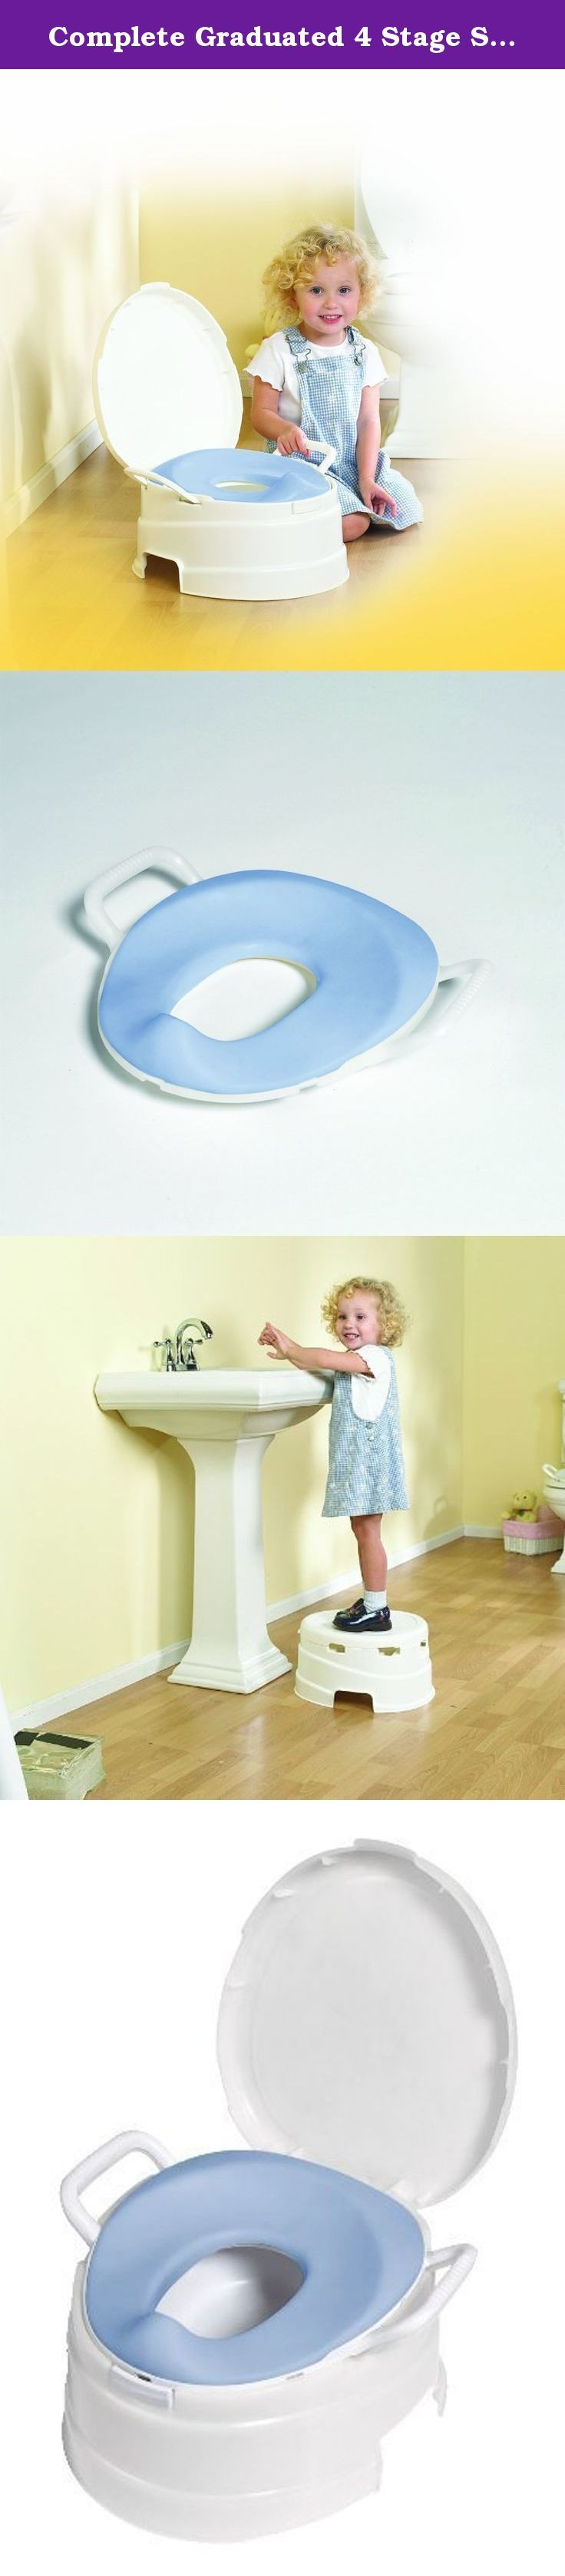 Complete Graduated 4 Stage Soft Seat Toilet Training System in White. PRIMO's 4 In 1 Soft Seat Toilet Trainer/Step Stool is a complete graduated 4 stage toilet training system. It follows your child through all of the stages of toilet training 1) beginning as a stand alone potty with an extra large easy to clean pot 2) graduating to the adult toilet with the PRIMO Soft Seat Reducer and step stool 3) using the step stool to reach the bathroom sink to clean hands 4) traveling with the PRIMO...